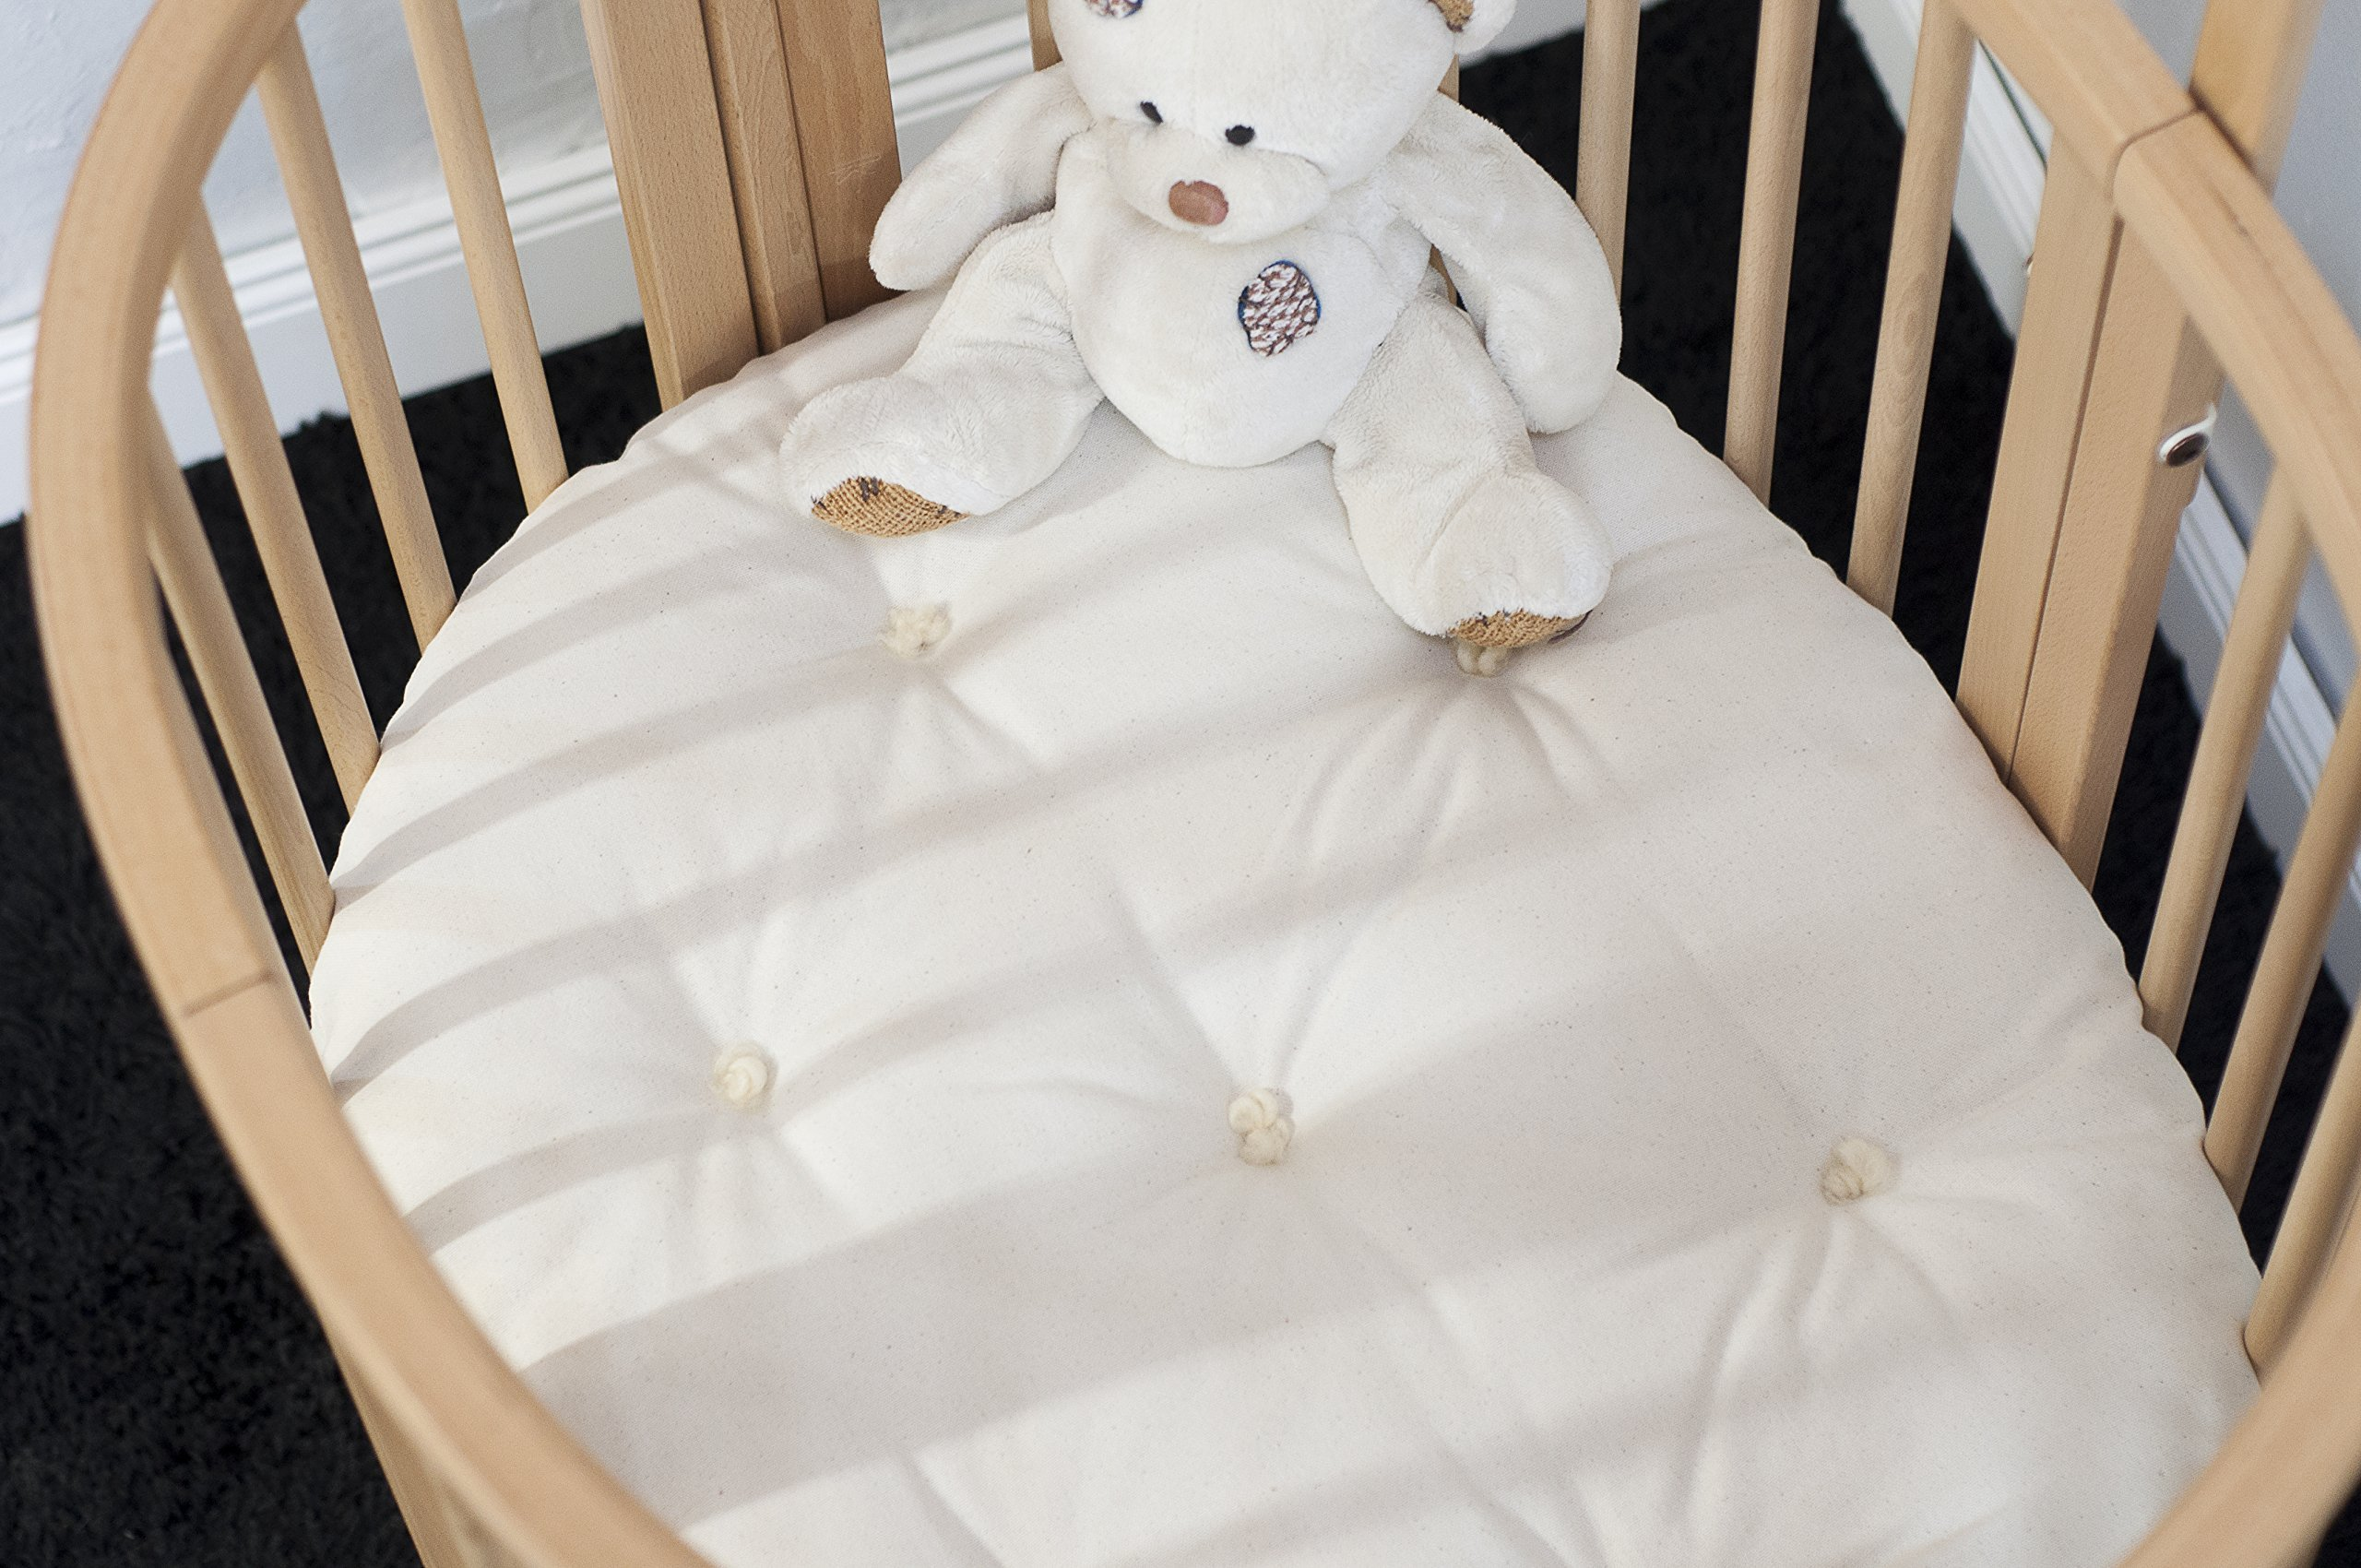 Home of Wool / Handmade Wool-Filled Mattress / STOKKE Sleepi Junior, Bed or Mini Size / Cover - Cotton, Linen or Lambswool / Organic Wool Filling/ Non-toxic Nursery Bedding / Custom Sizes Available